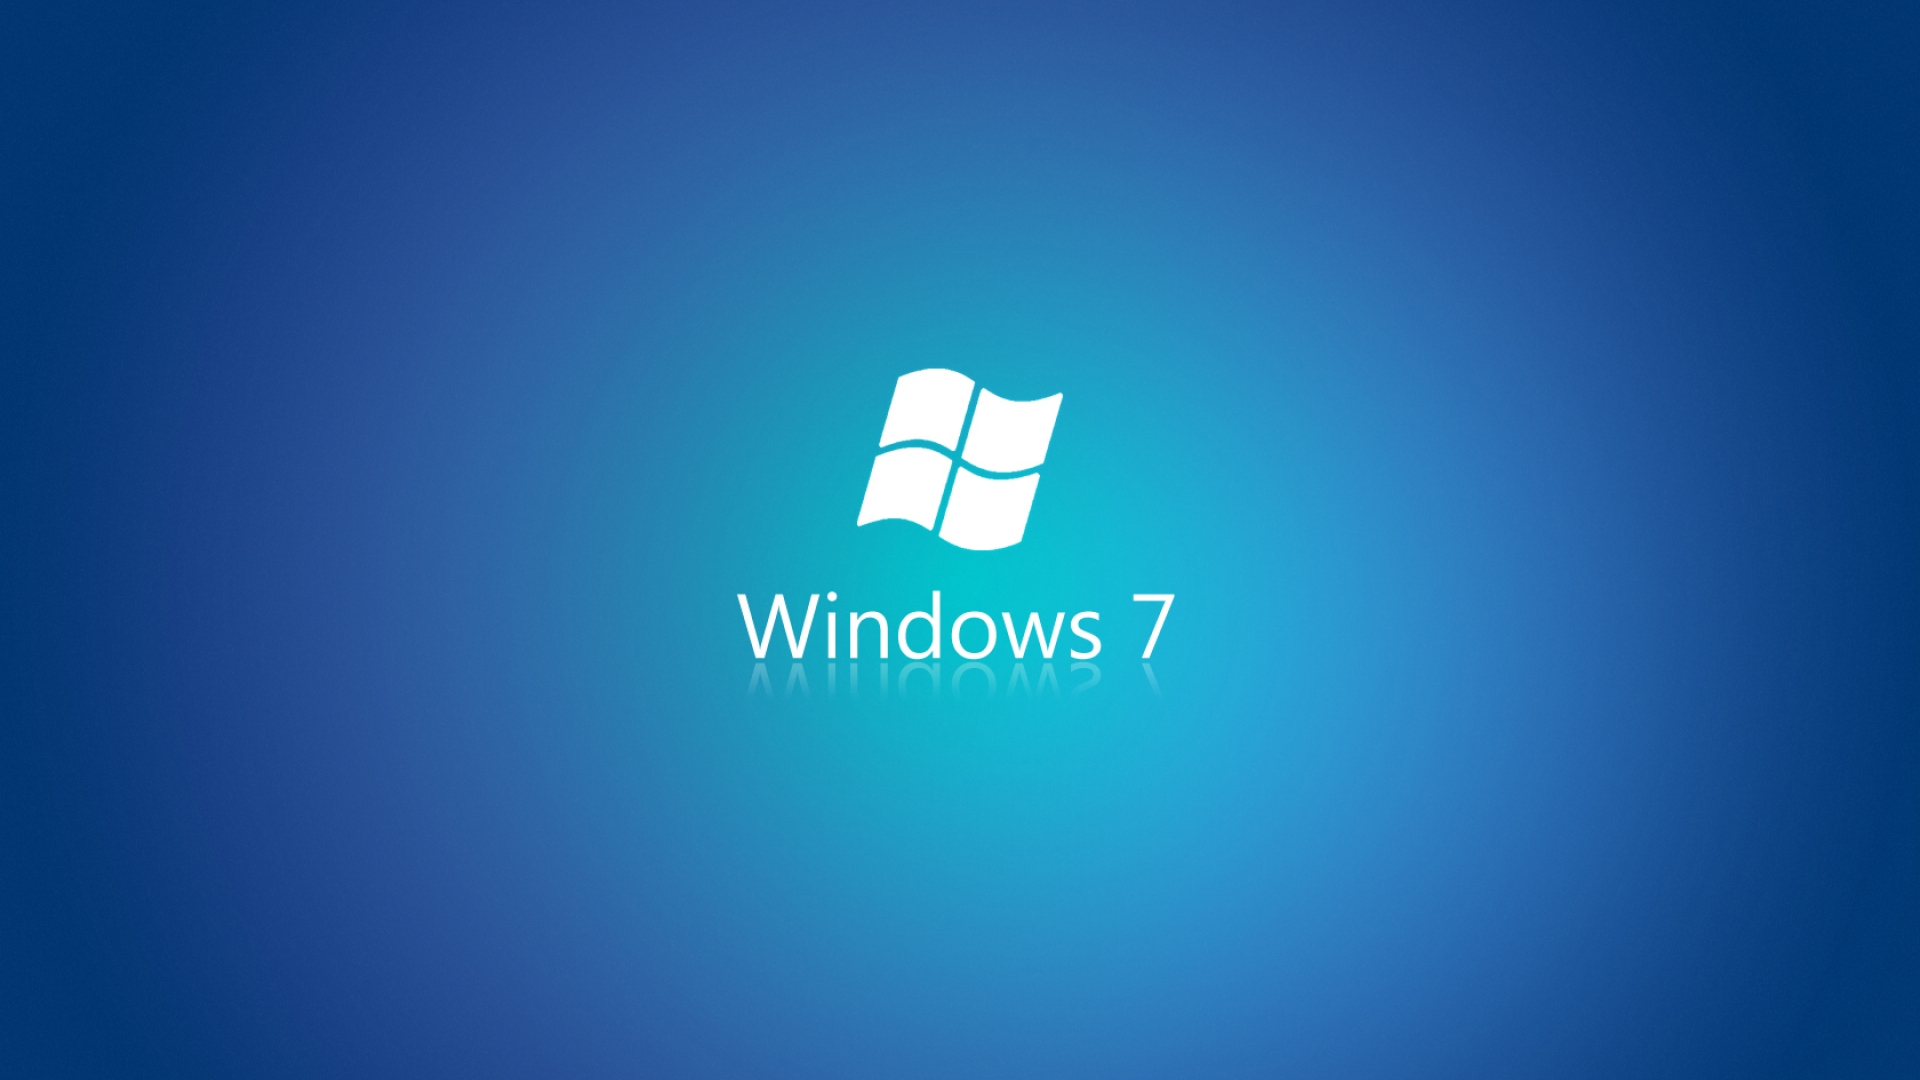 wallpapershighresolutionwallpapernetWindows 7 logo wallpaperjpg 1920x1080